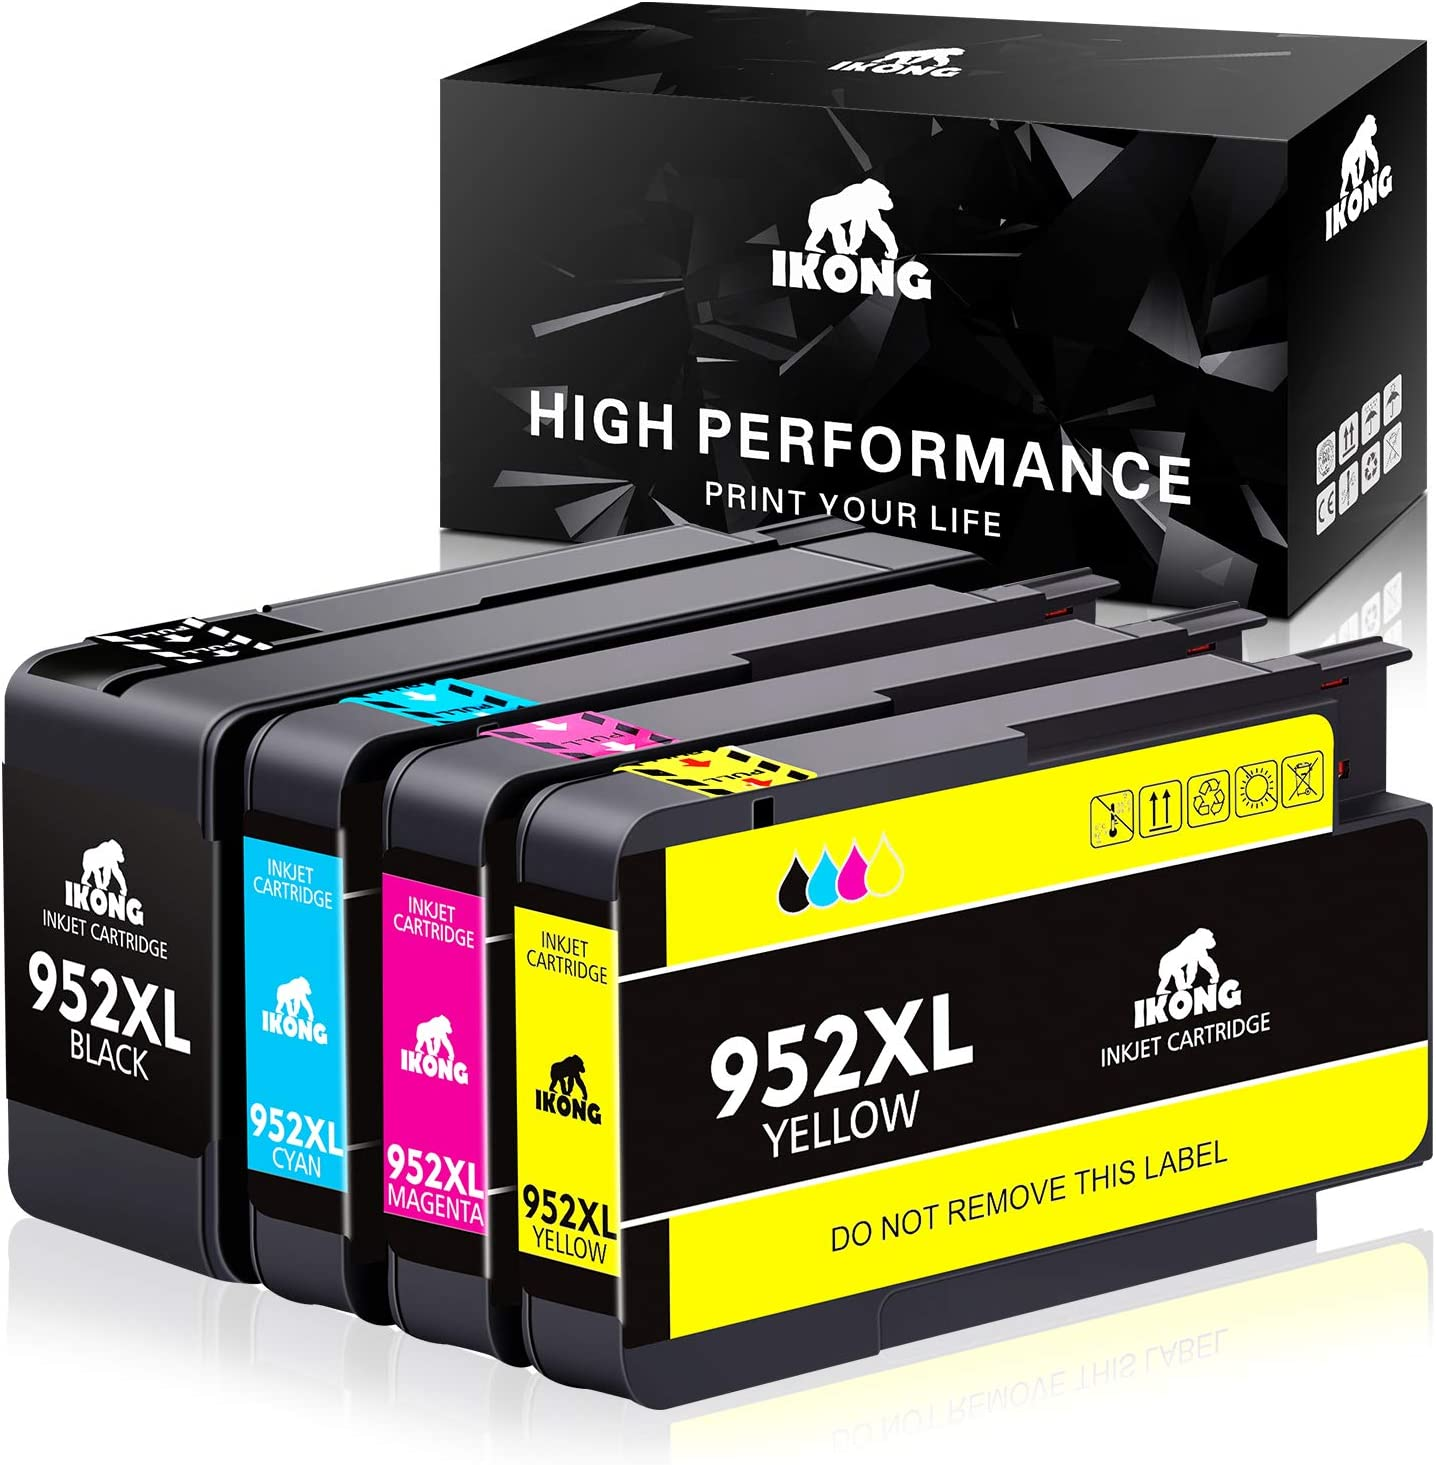 IKONG Compatible Ink Cartridge Replacement for HP 952 XL 952XL use with OfficeJet Pro 8710 8720 8740 8730 7740 8210 8715 8216 8725 8702 Printer 4-Pack